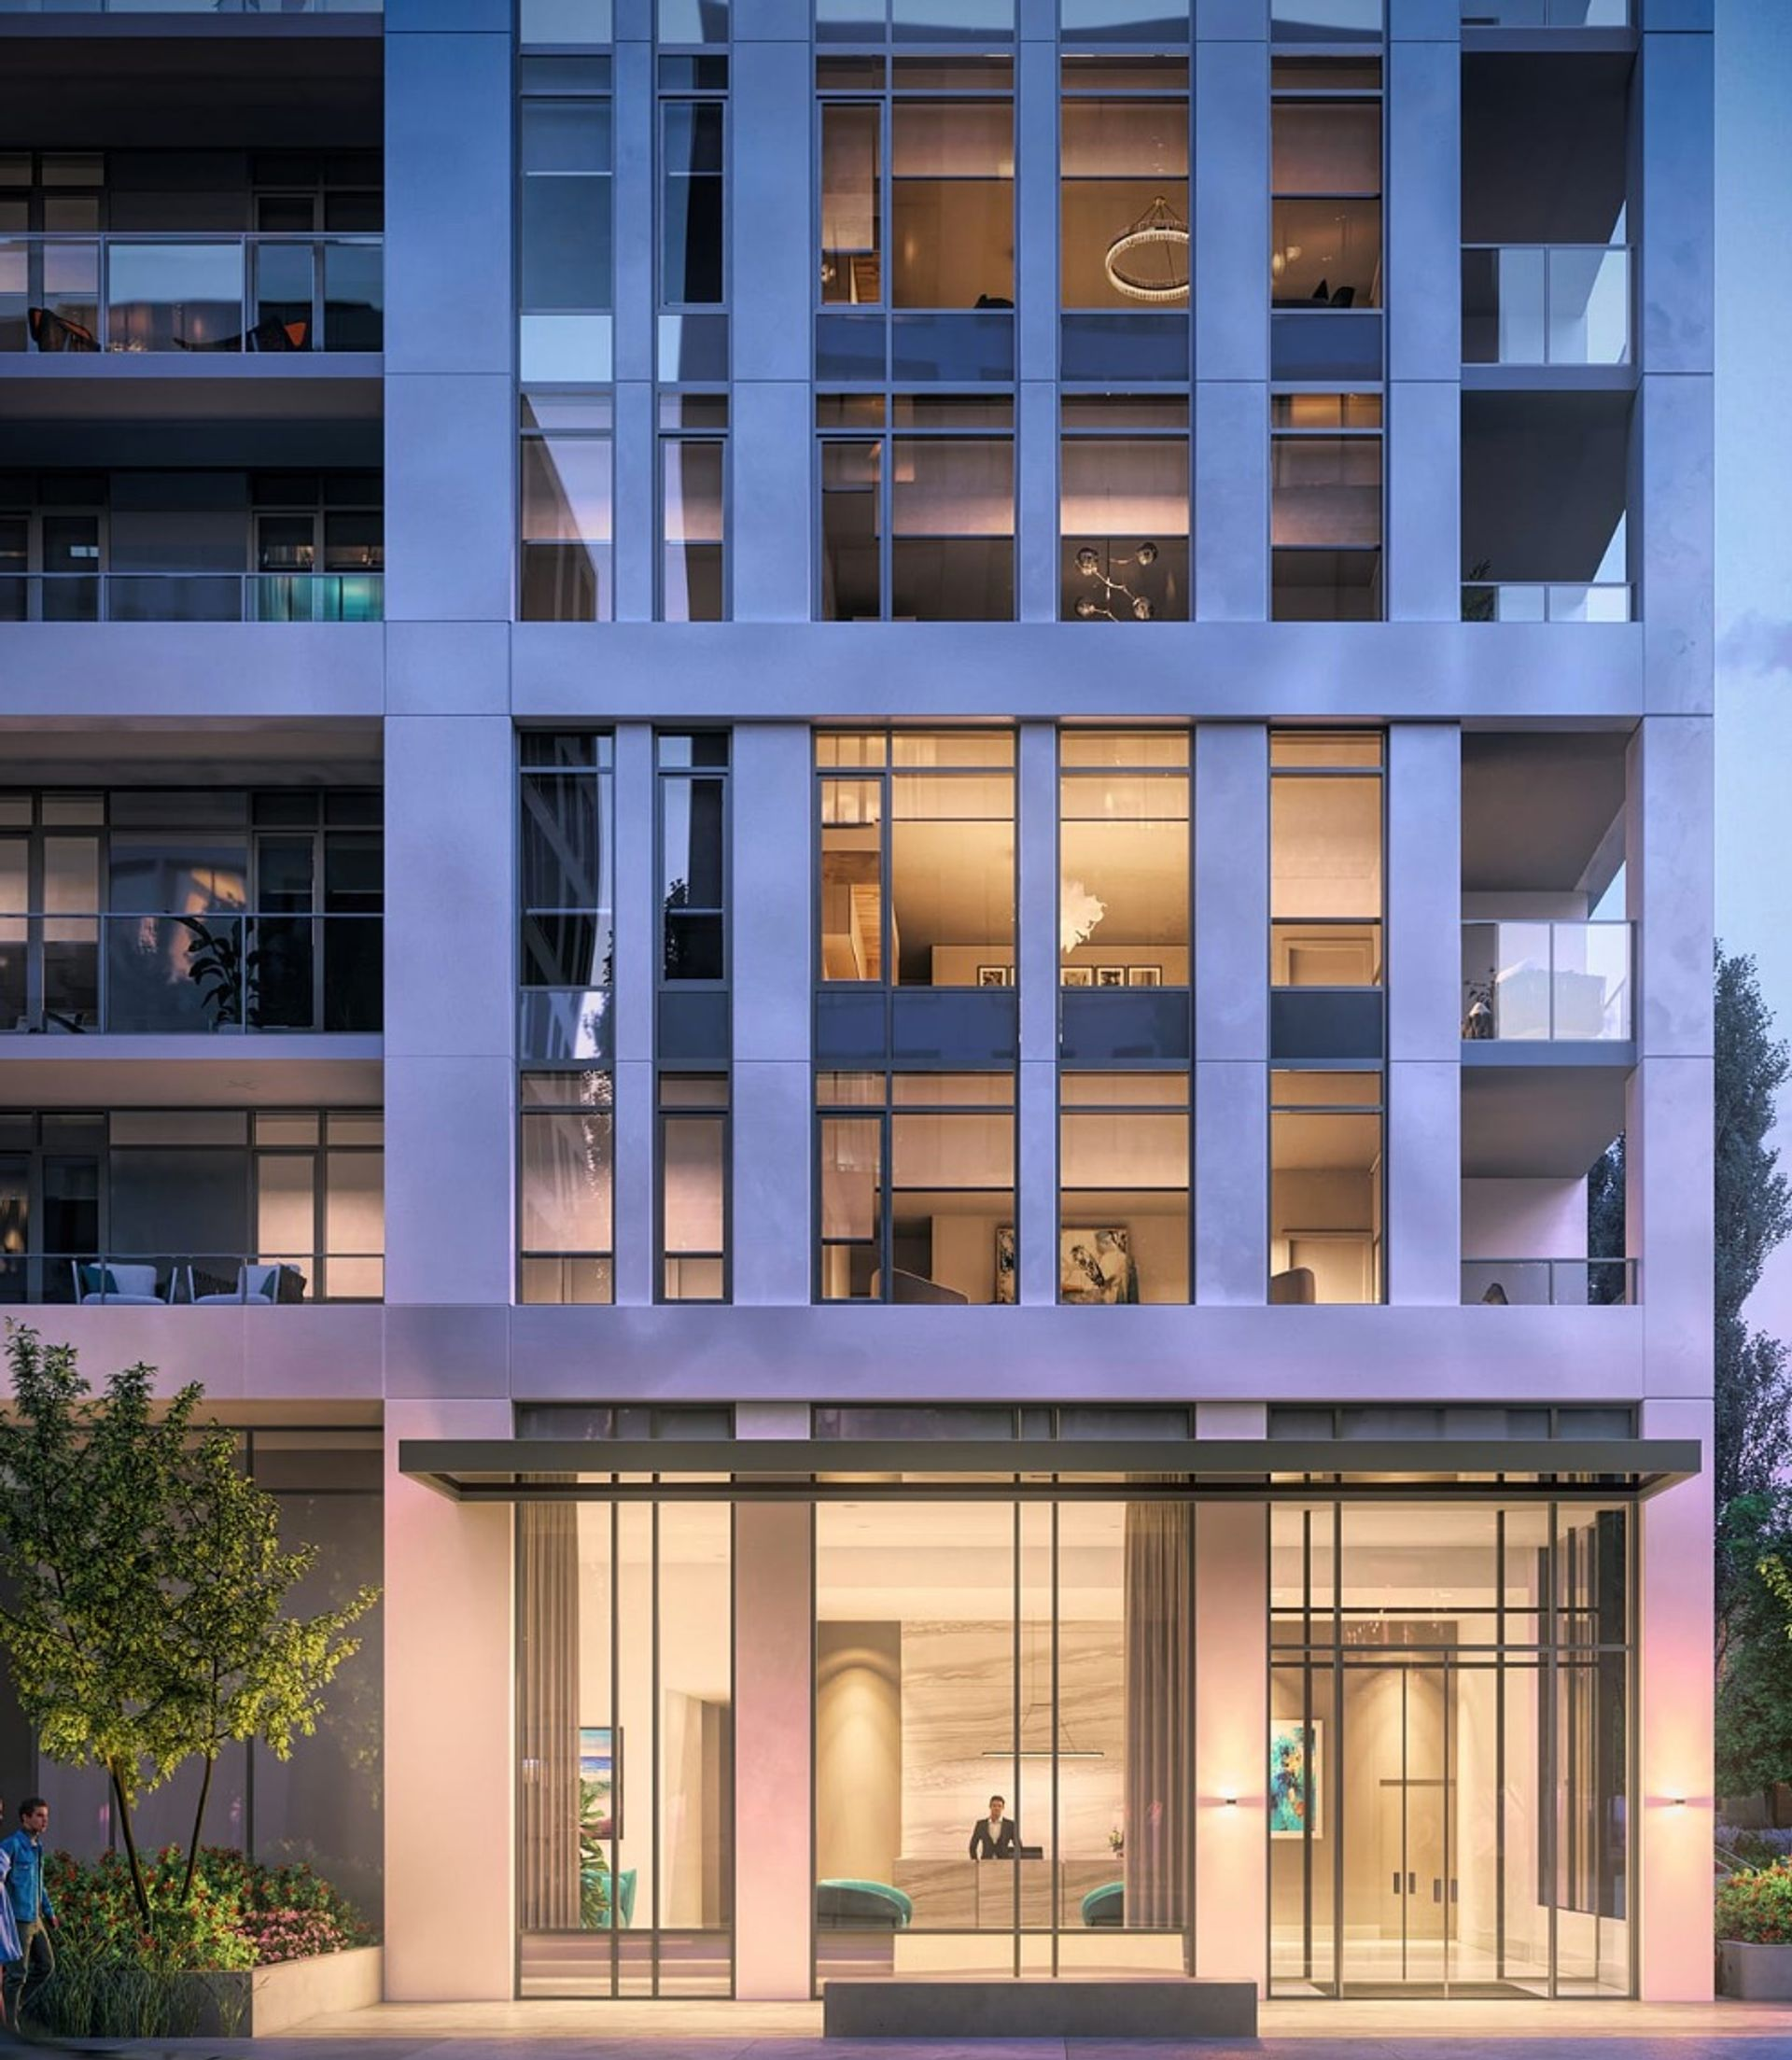 standard-2 at The Standard (6444 Willingdon Avenue, Metrotown, Burnaby South)